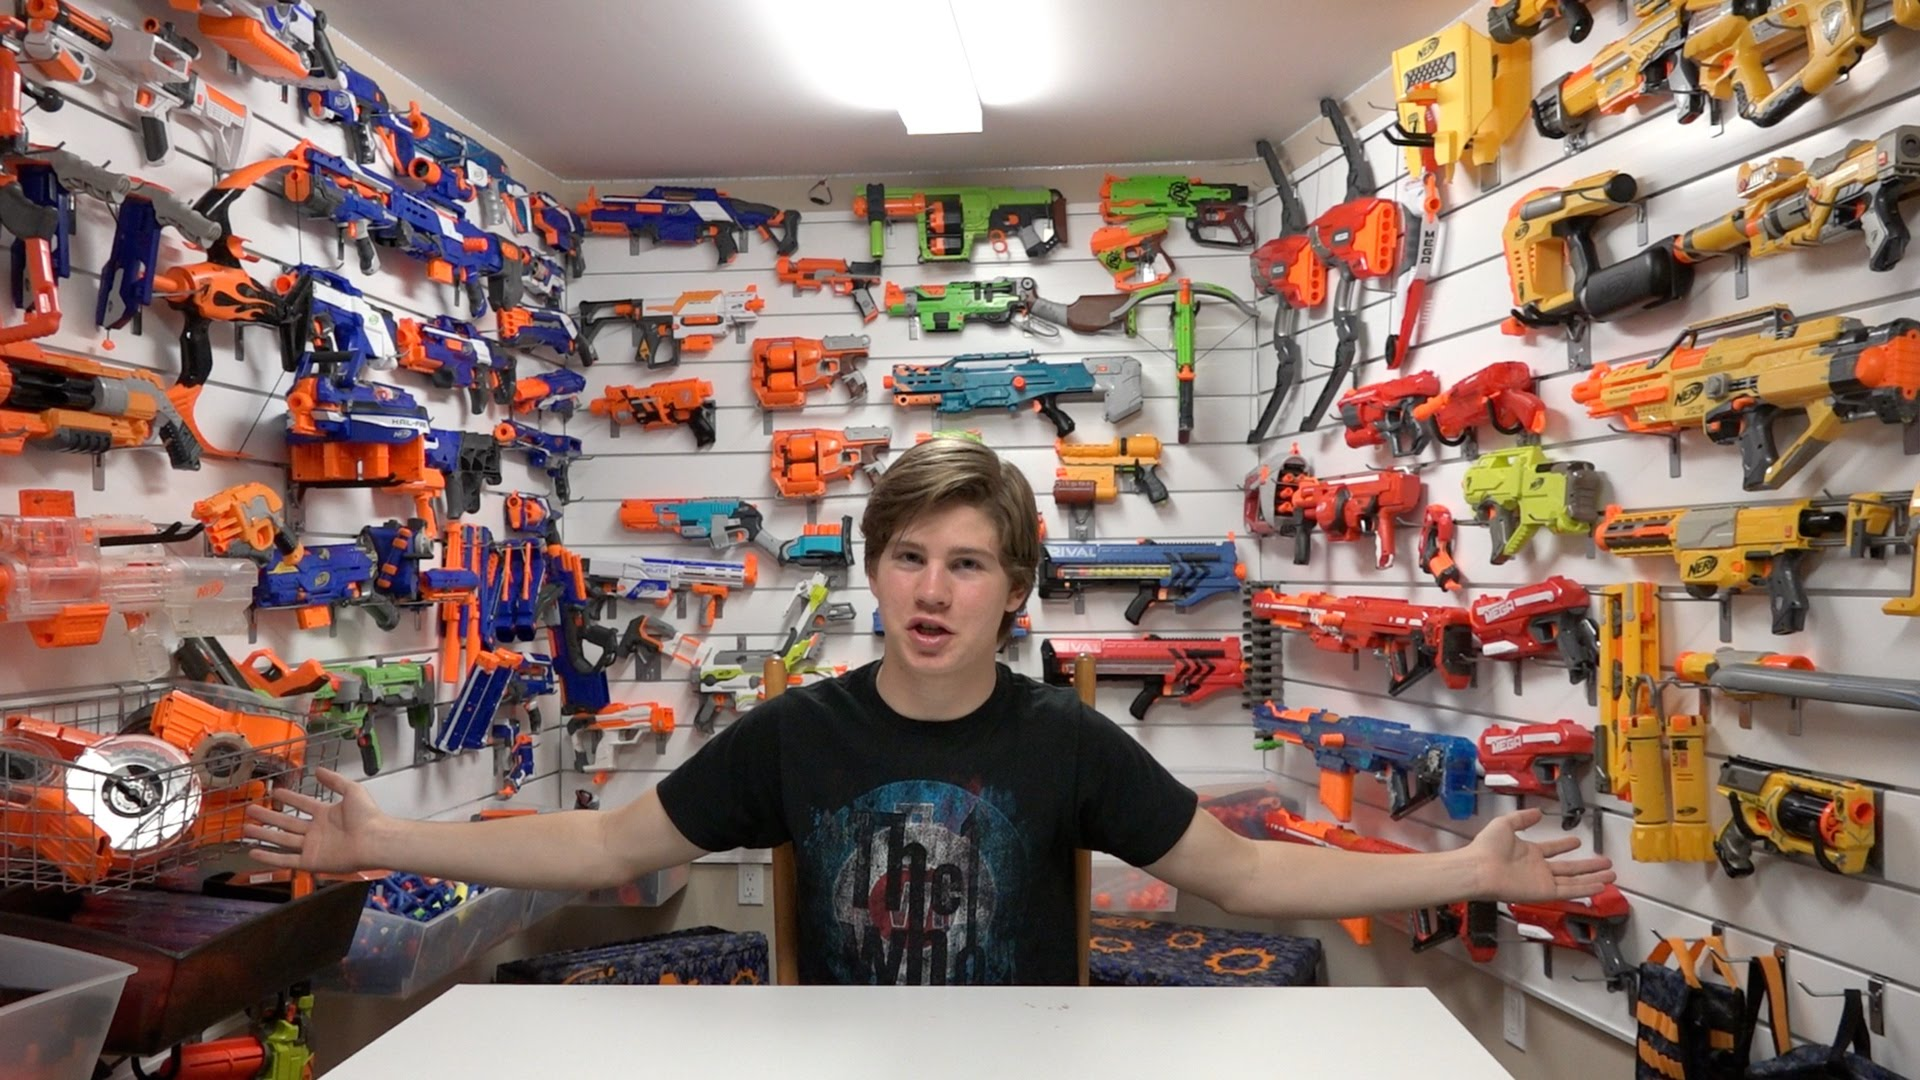 nerf guy with a lot of nerf